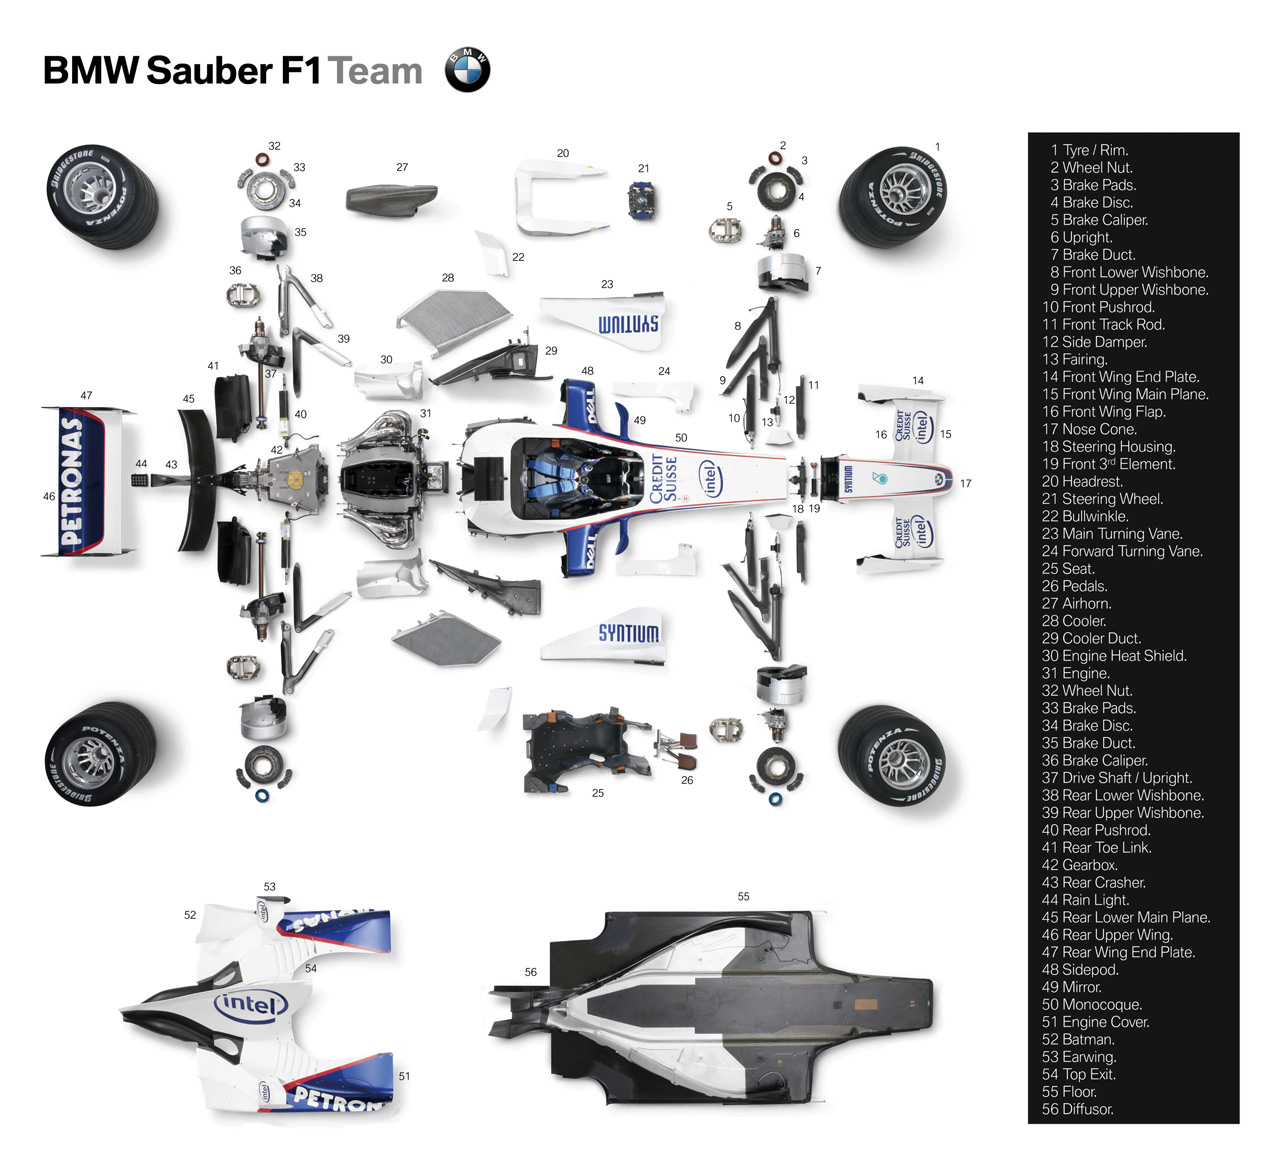 Source F1fanatic Wp Content Uploads